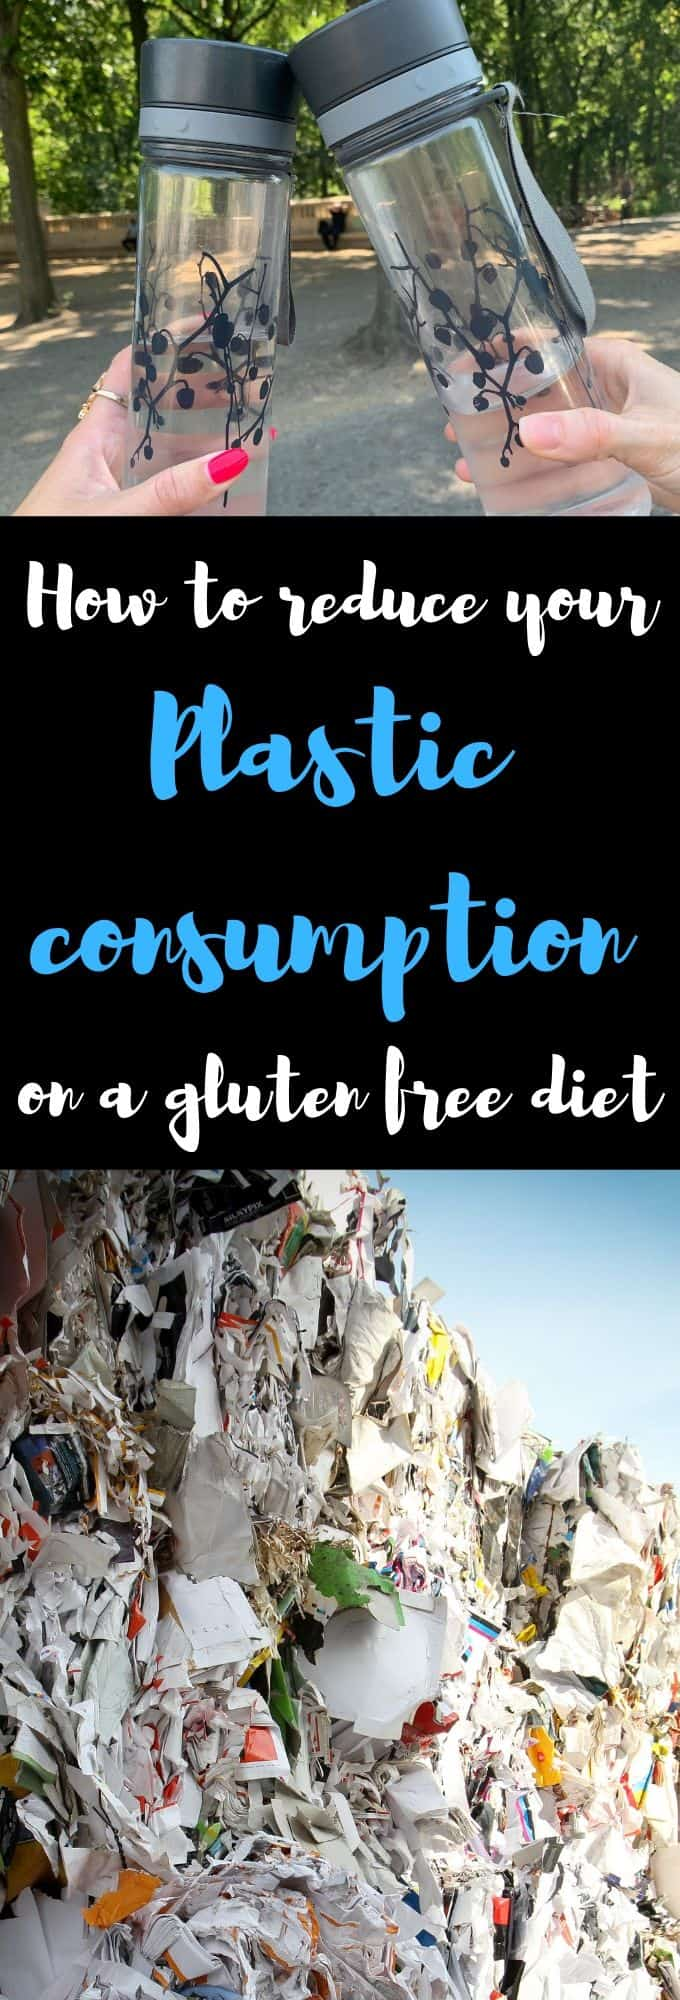 how to reduce plastic consumtion on a gluten free diet